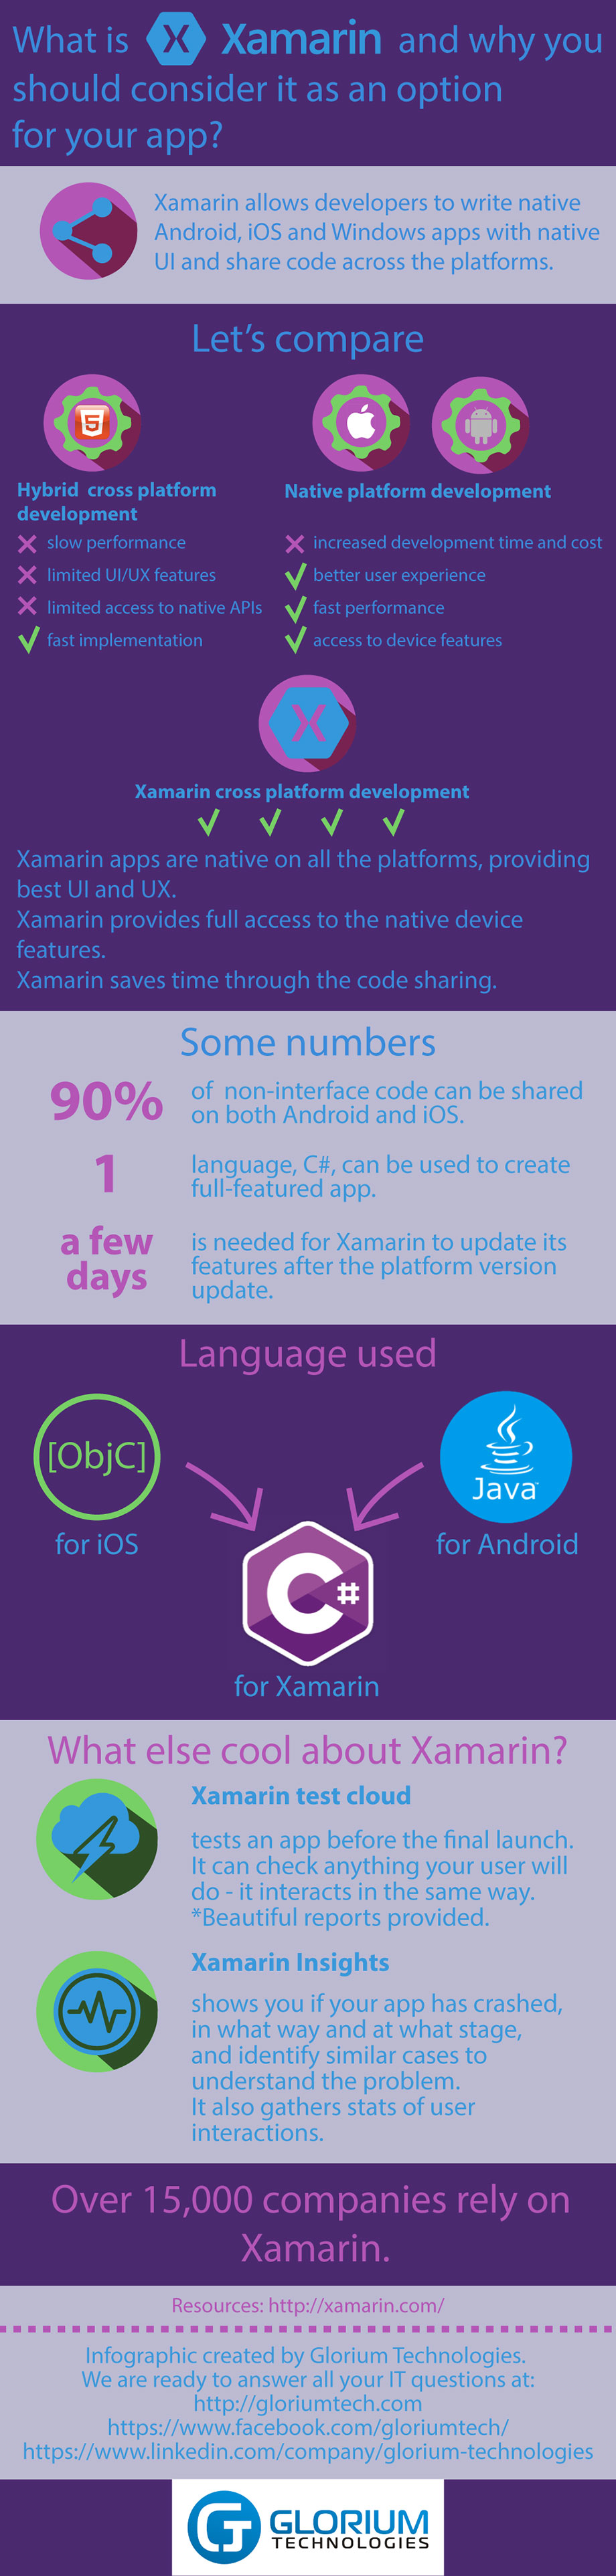 Xamarin Development: A Great Option for Mobile App Development (Infographic)